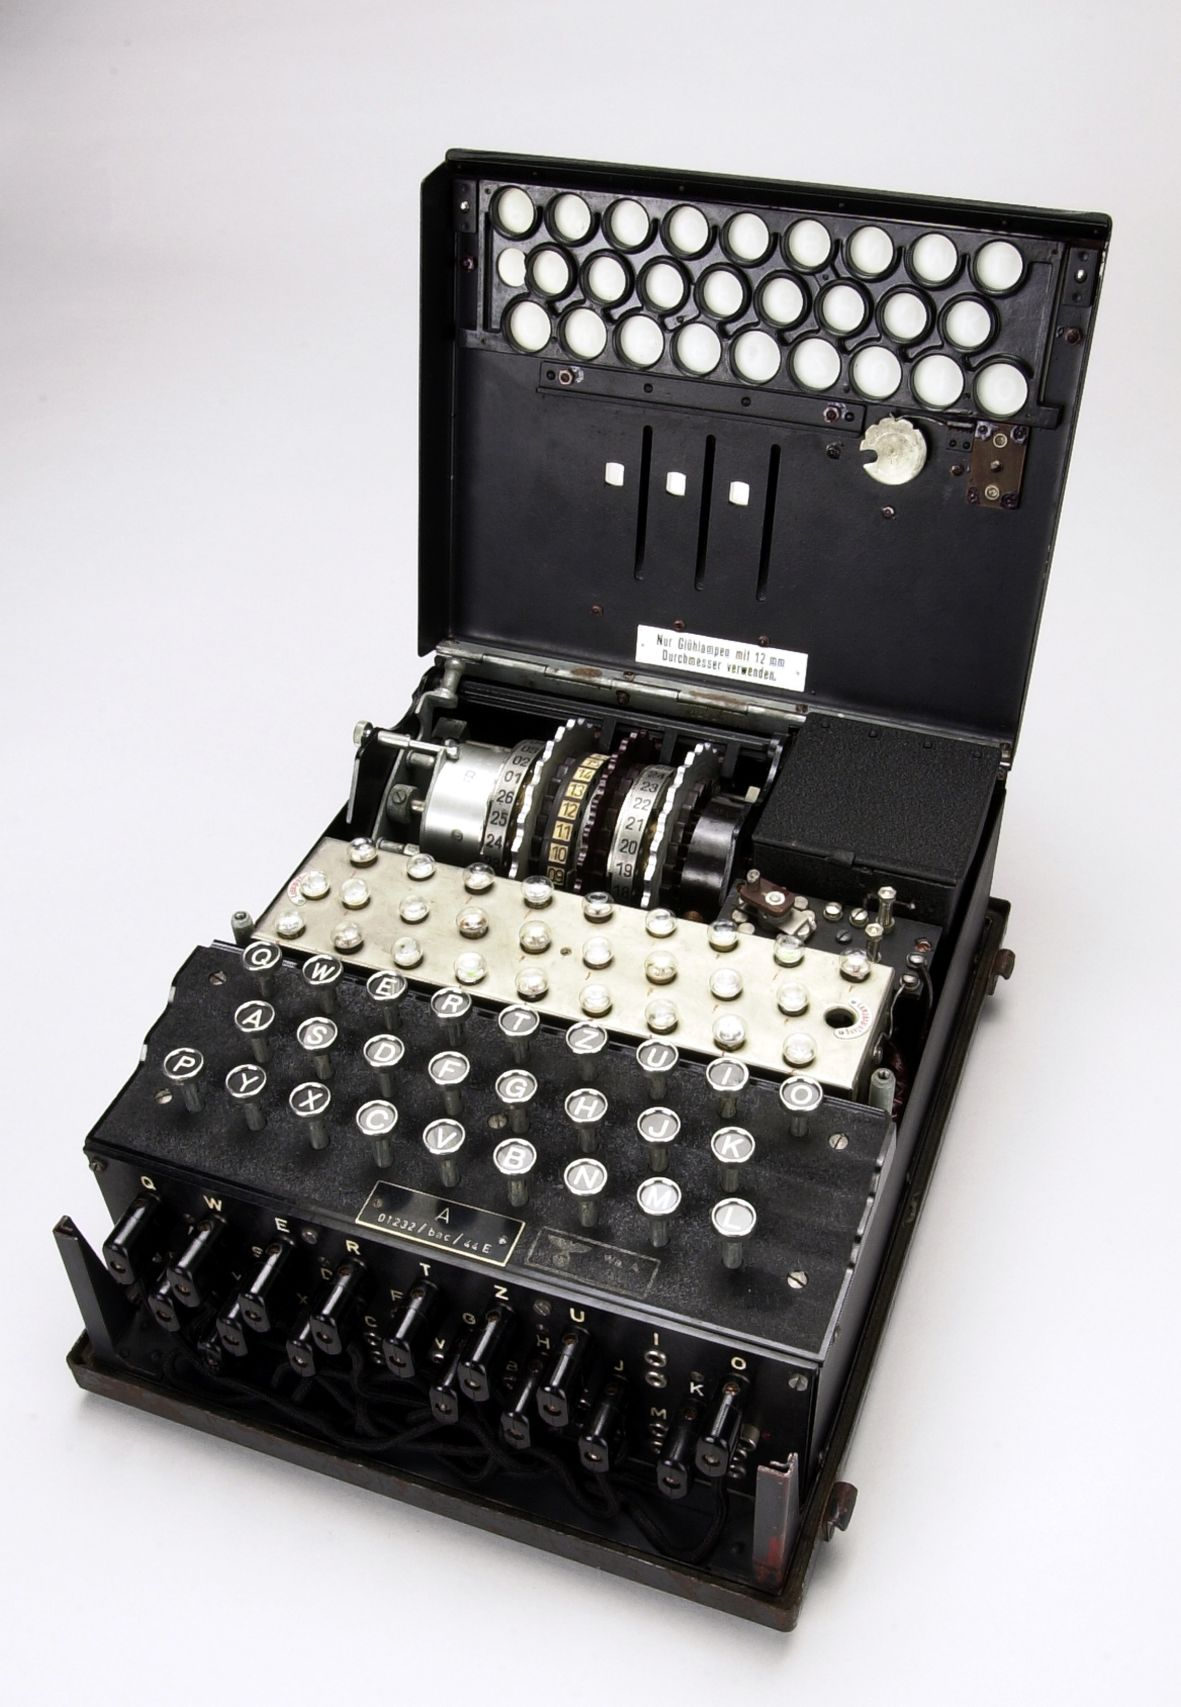 turing enigma machine